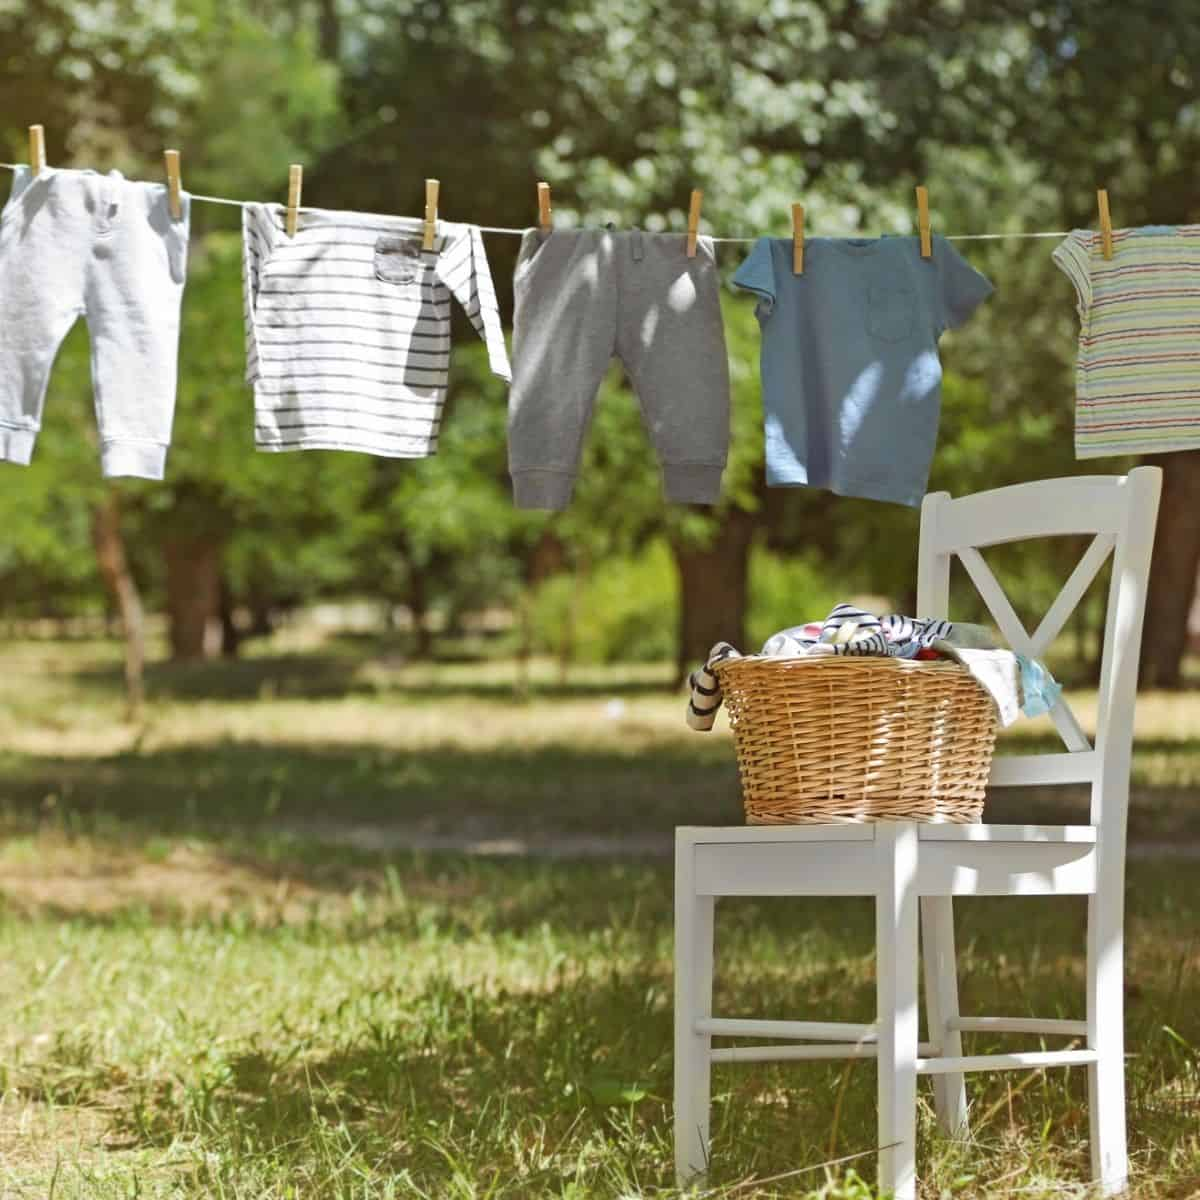 outdoor clothesline, chair in front with laundry basket